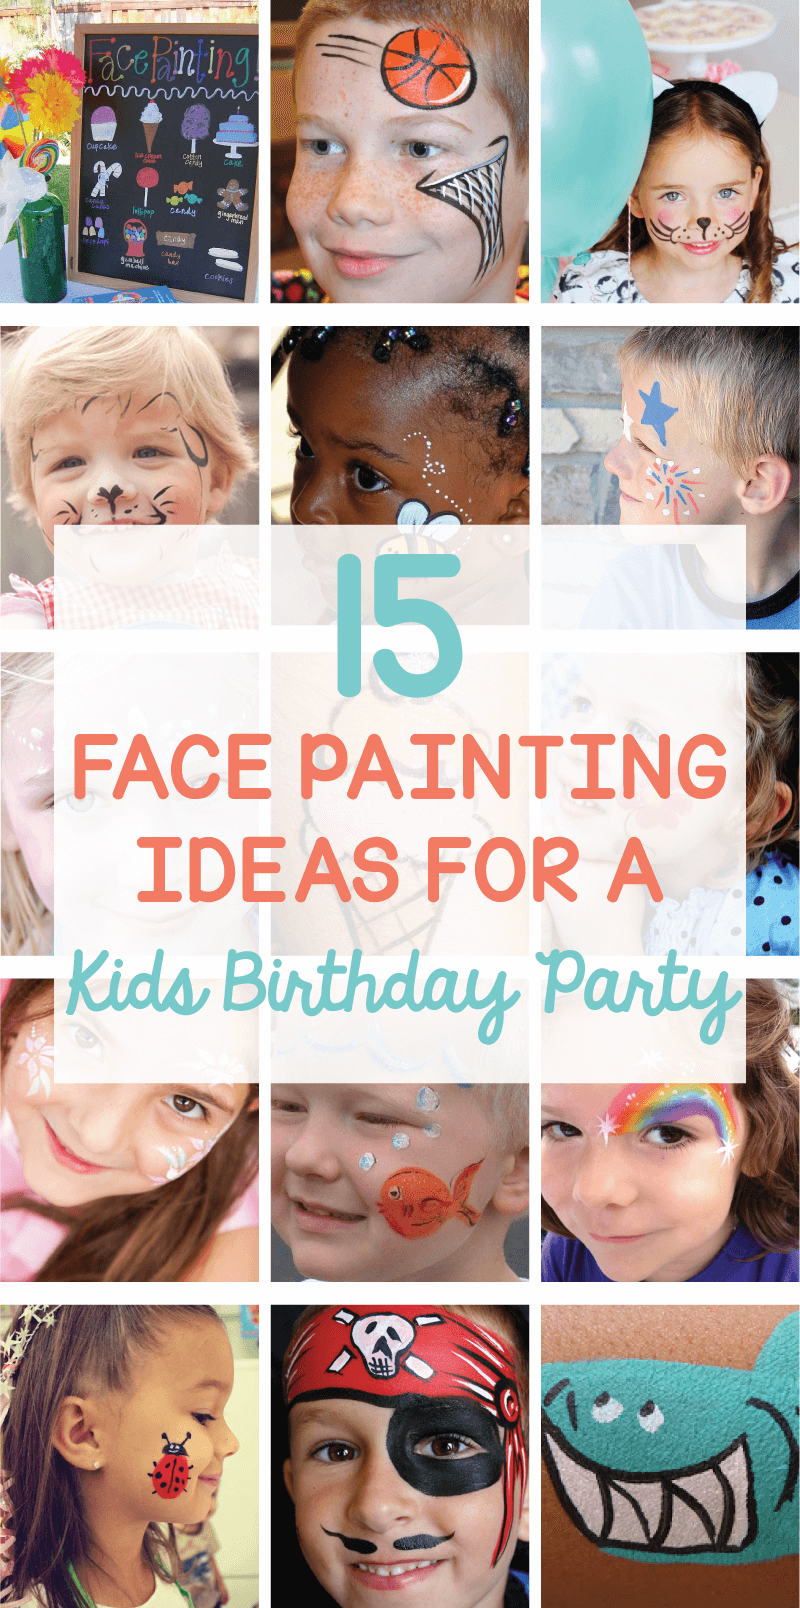 Face painting ideas for a kids birthday party